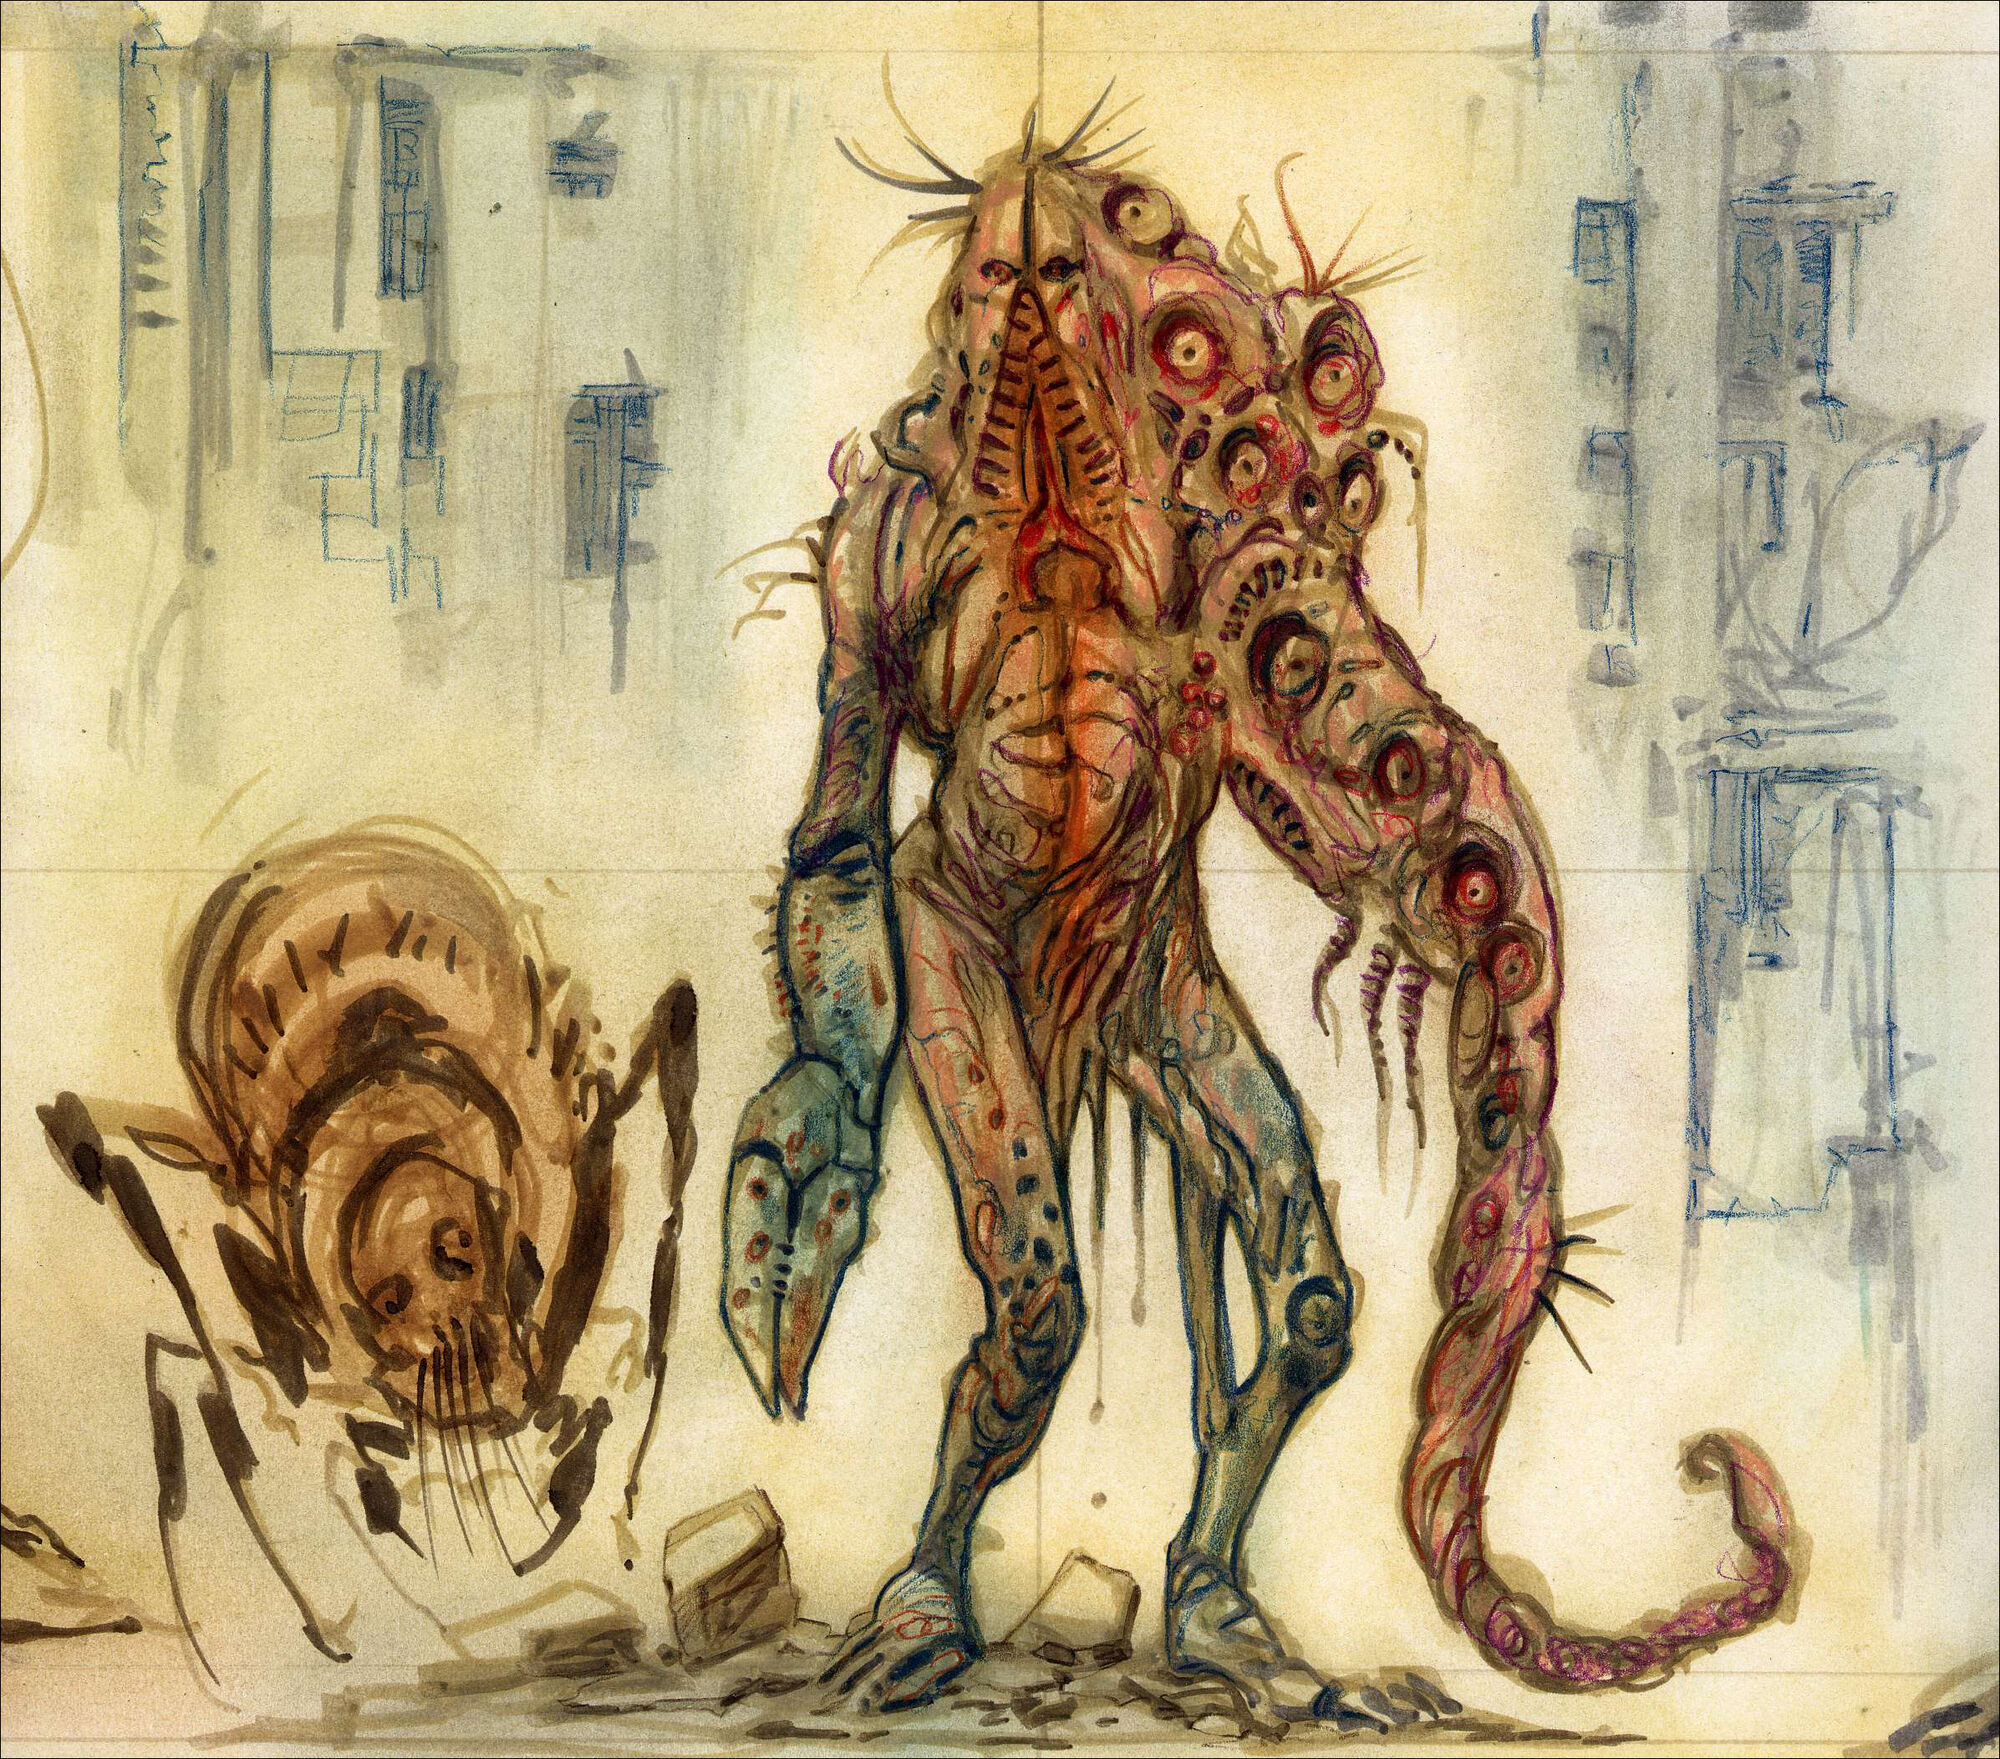 Image F03 Abomination Concept Art 02 Jpg Fallout Wiki